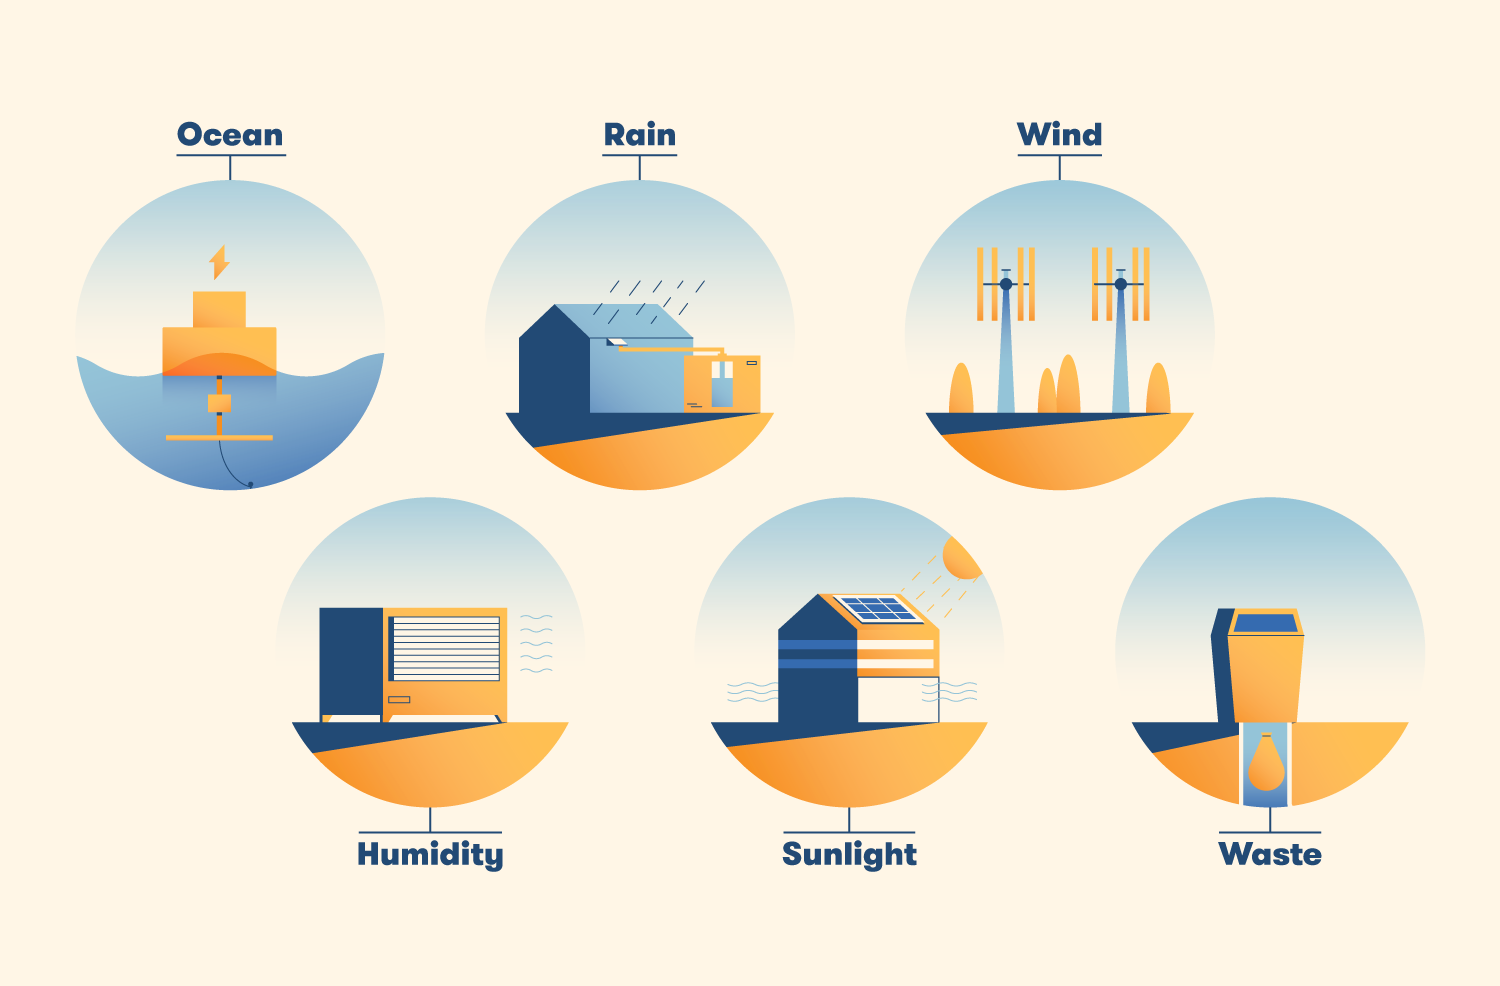 Floating cities would have renewable resources such as the ocean, rain, wind, humidity, sunlight, and waste.